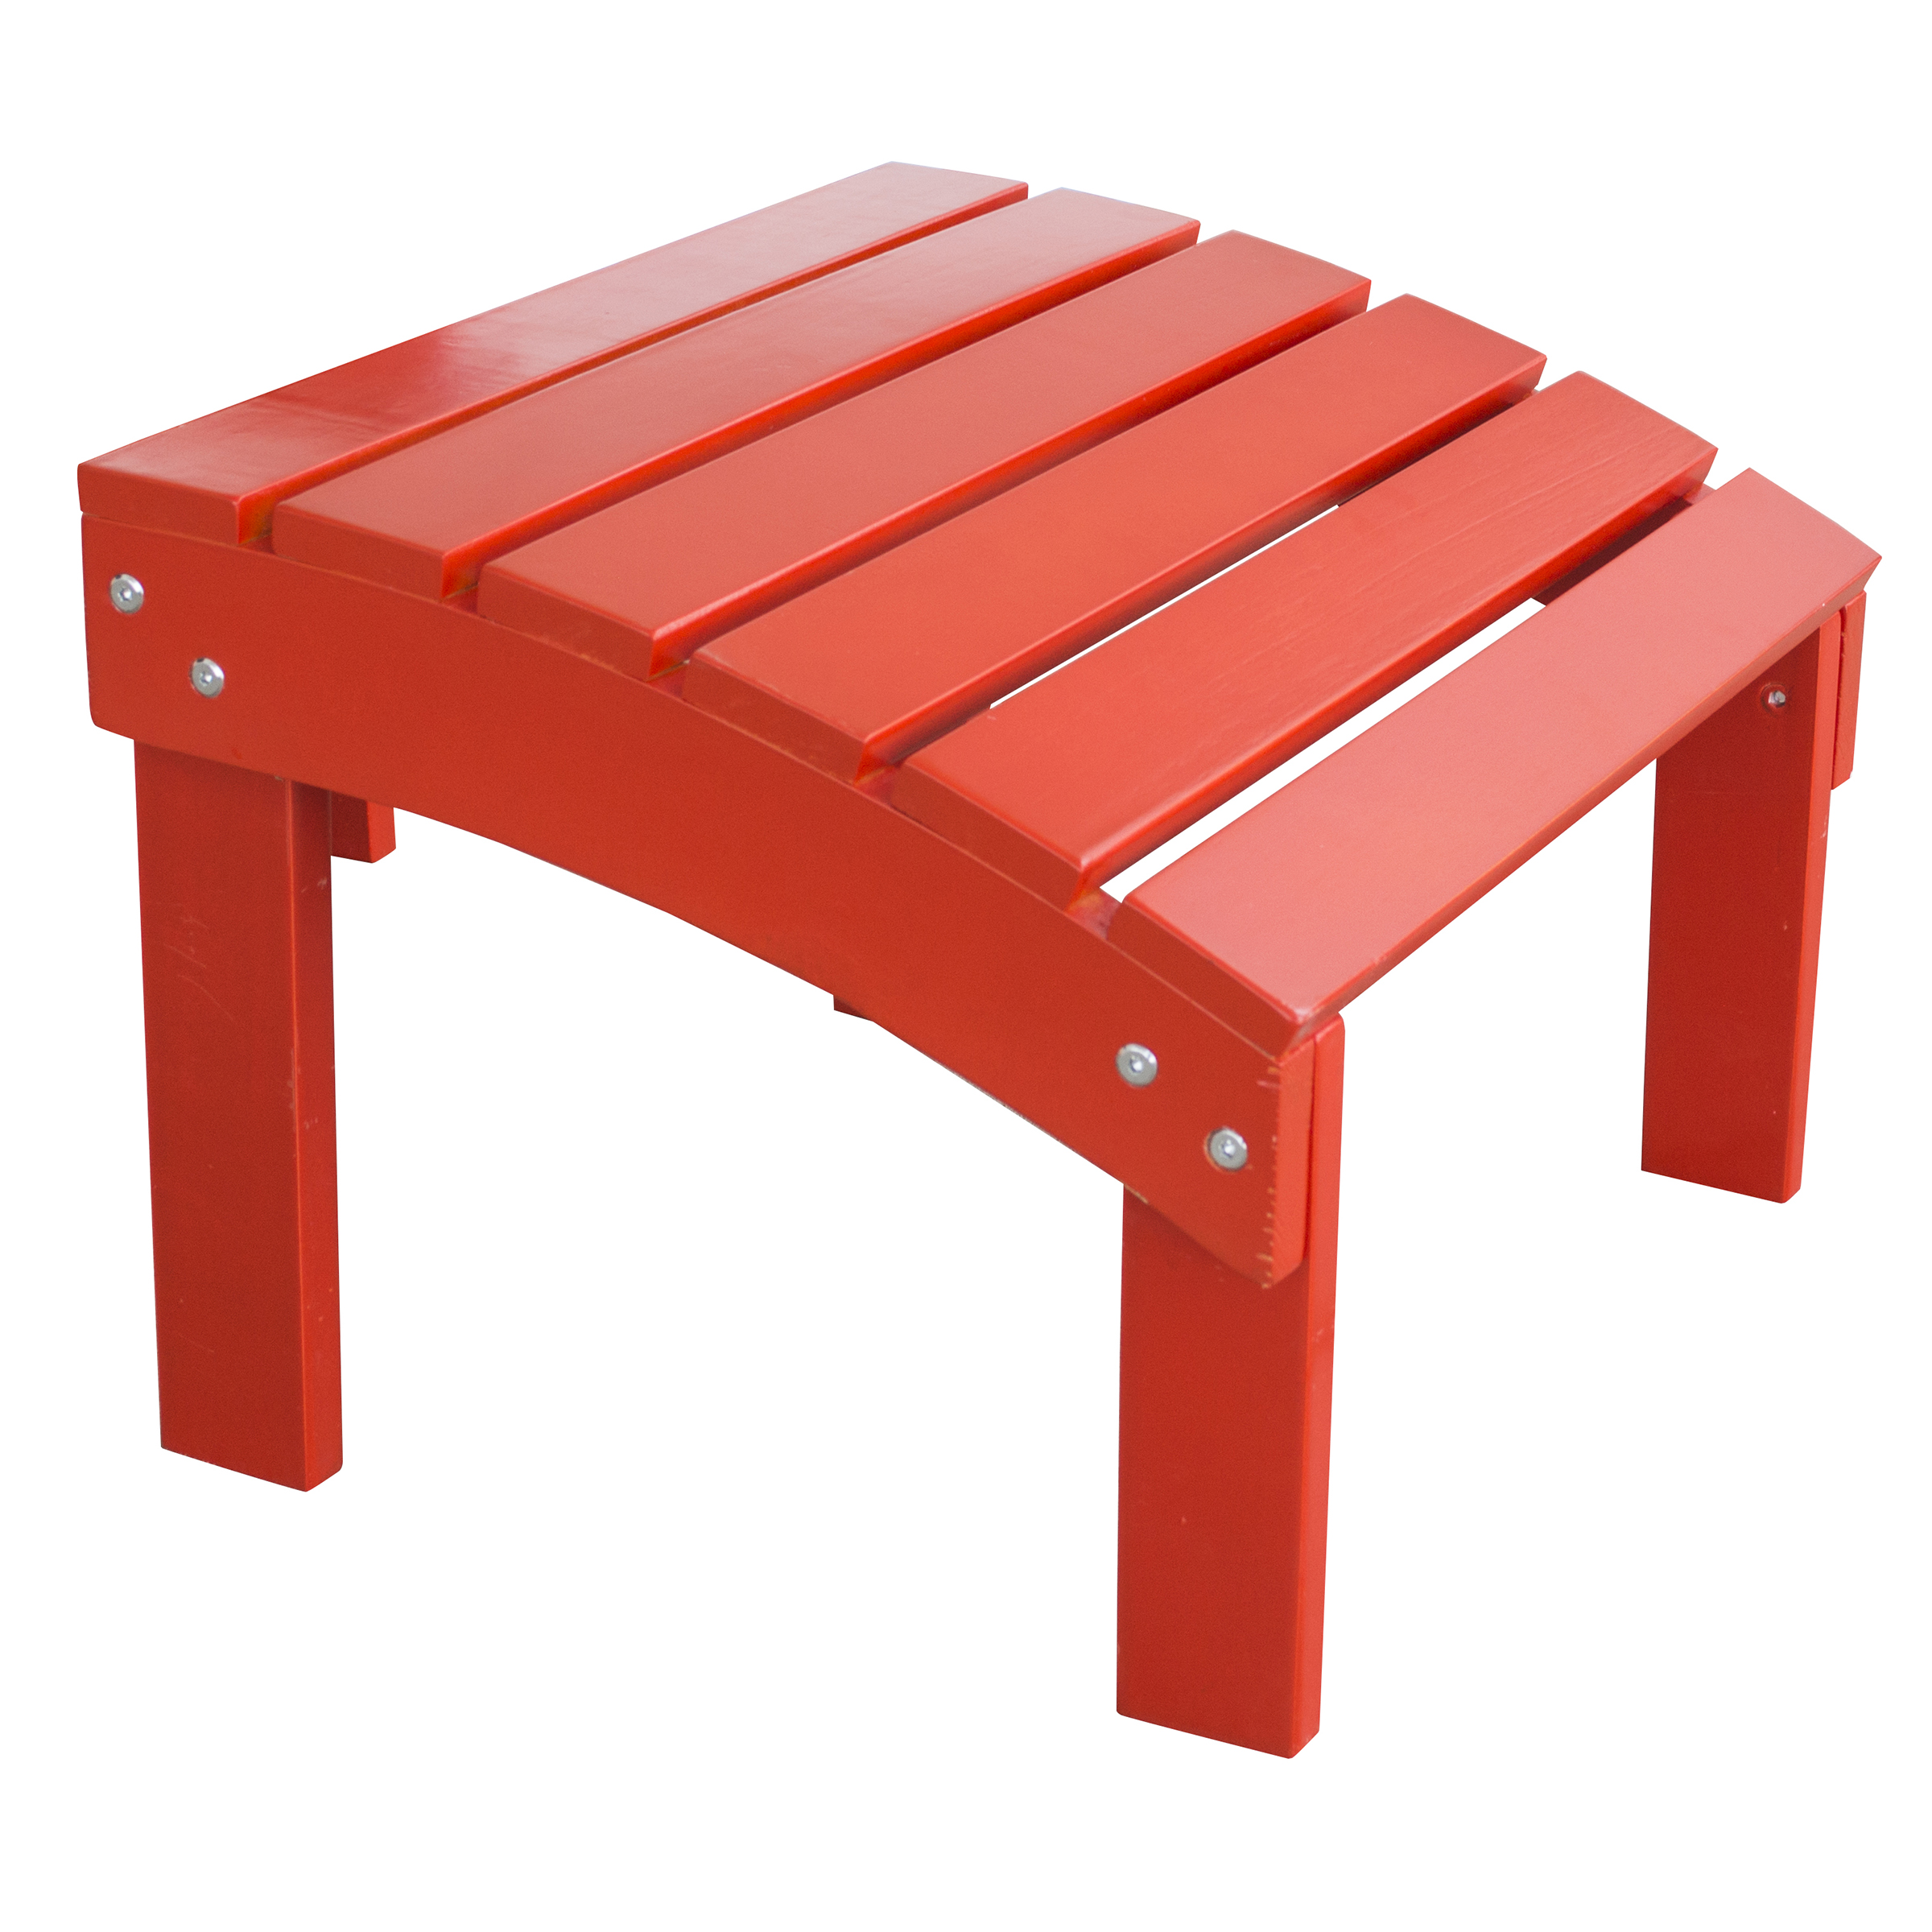 Solid Wood Adirondack Footrest Ottoman with Painted Finish - Red